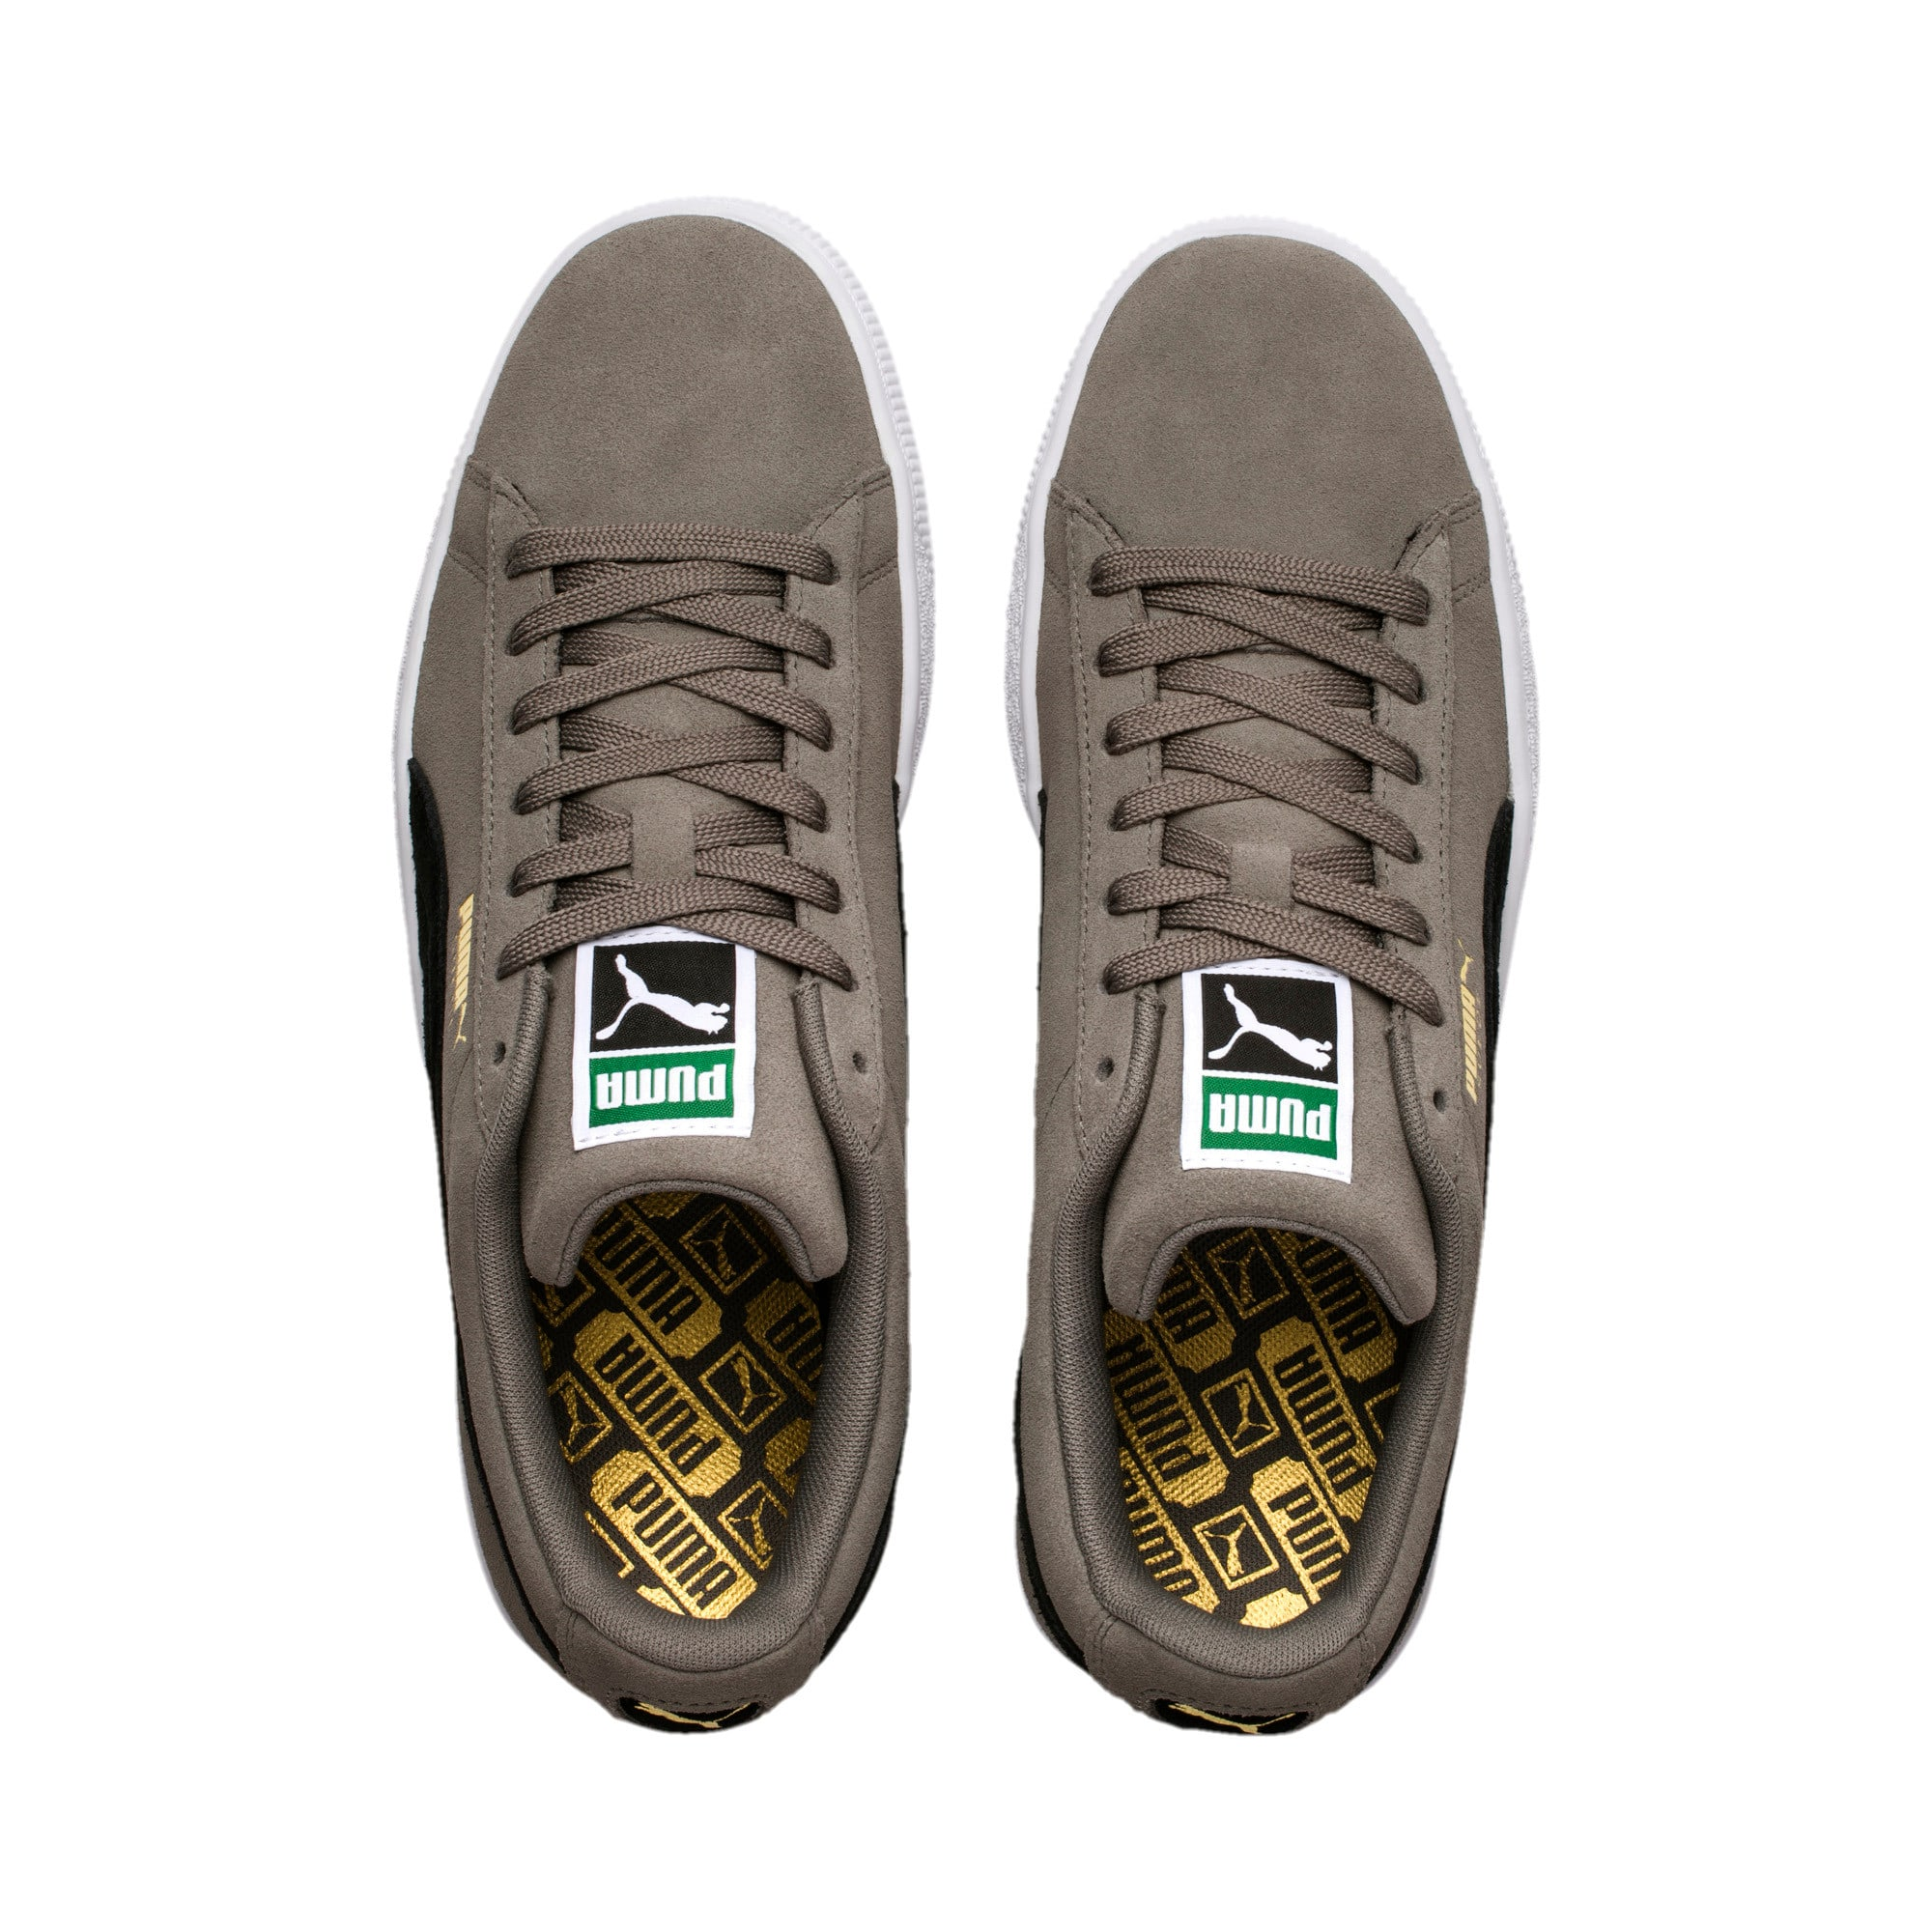 Thumbnail 6 of Suede Classic Trainers, Charcoal Gray-Puma Black, medium